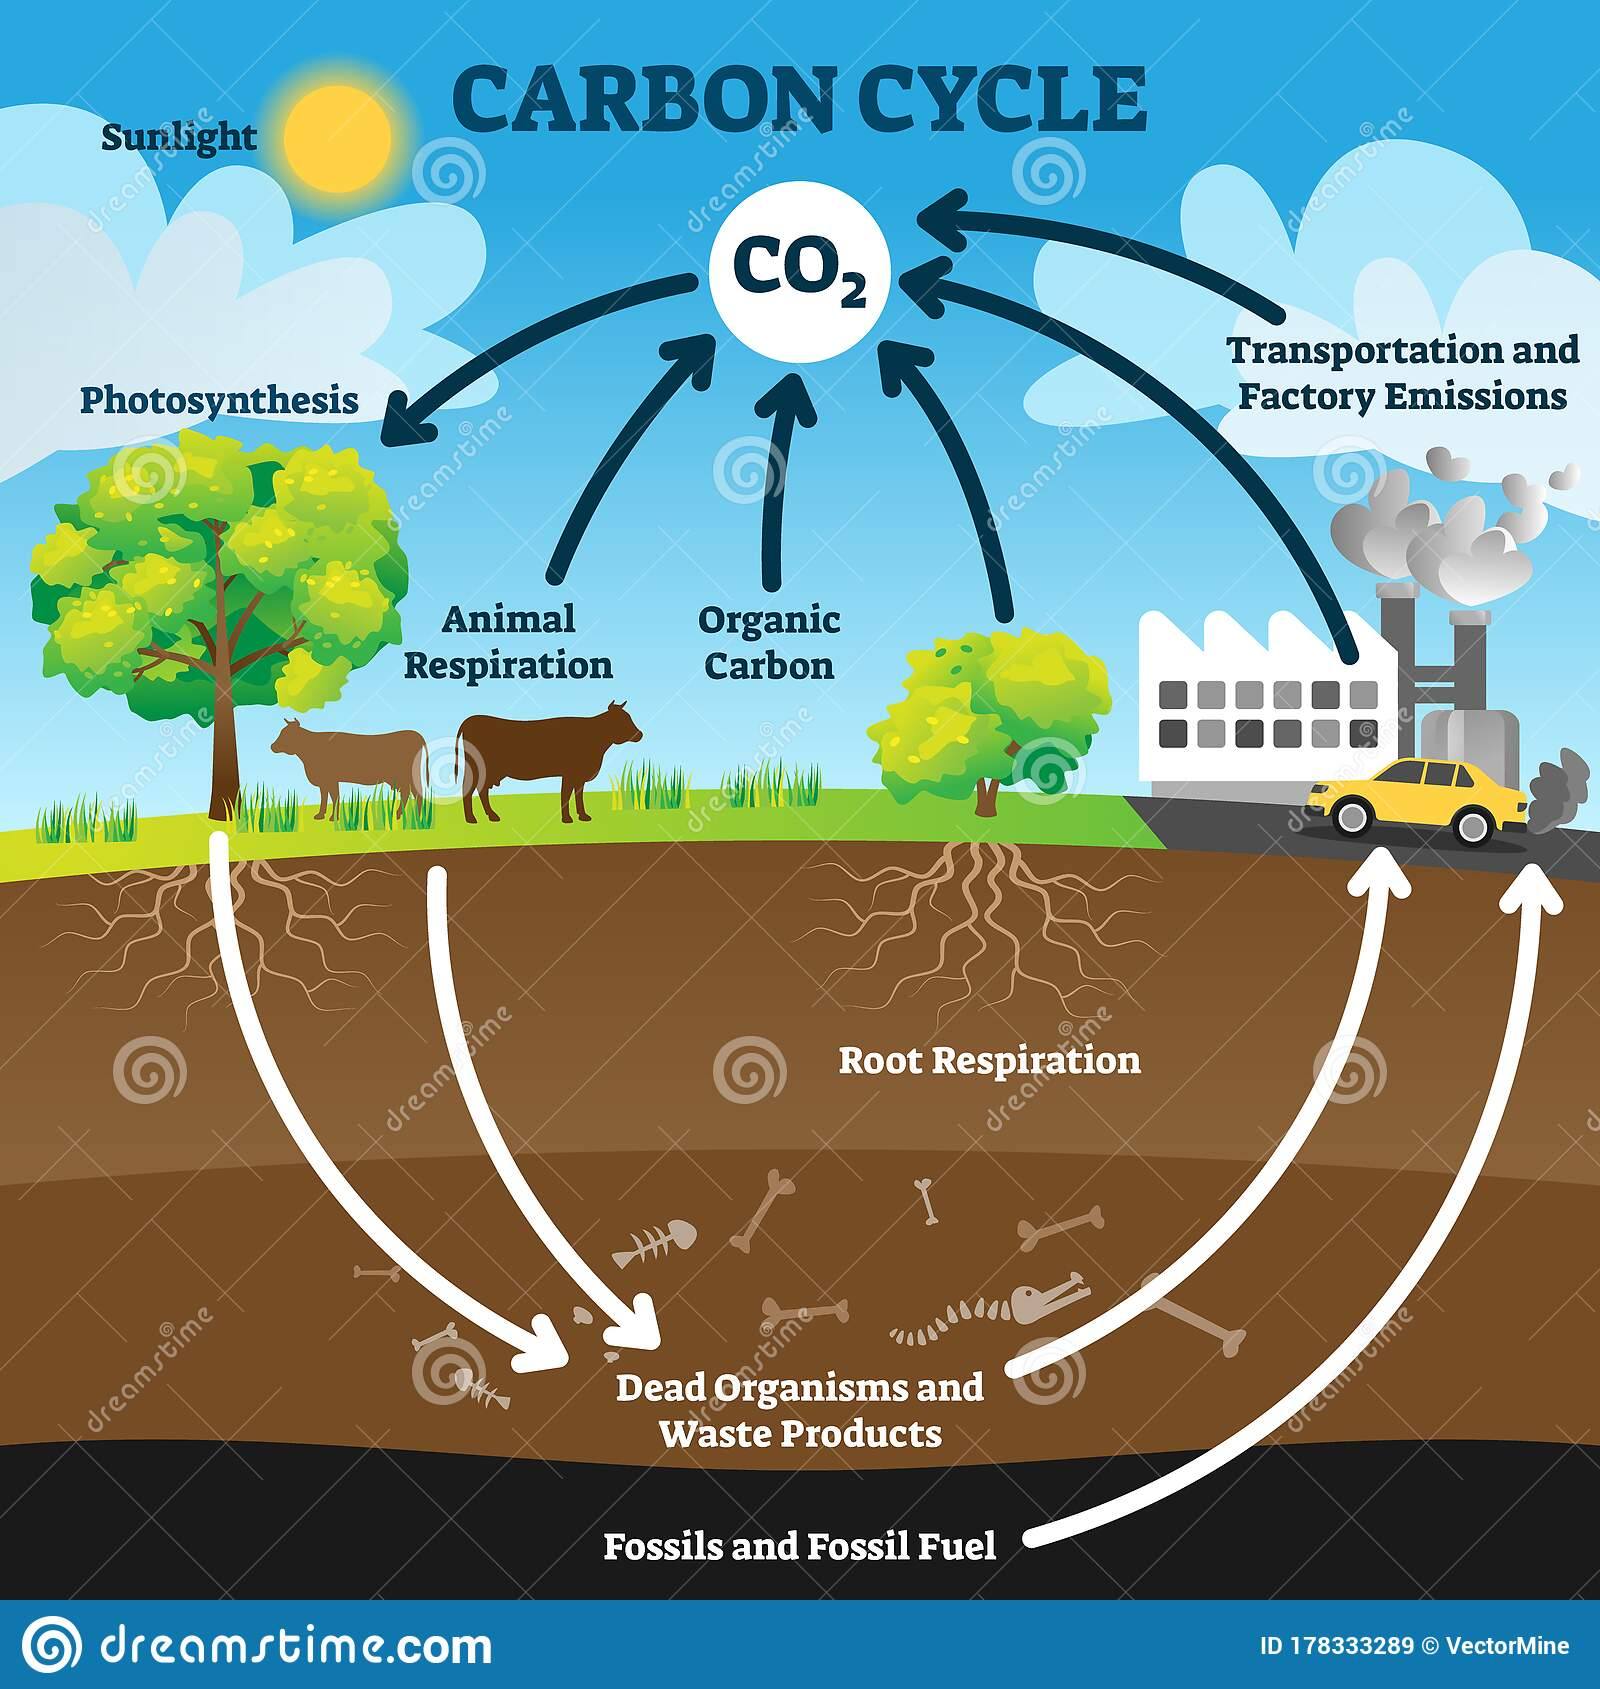 Carbon Cycle Vector Illustration Labeled Co2